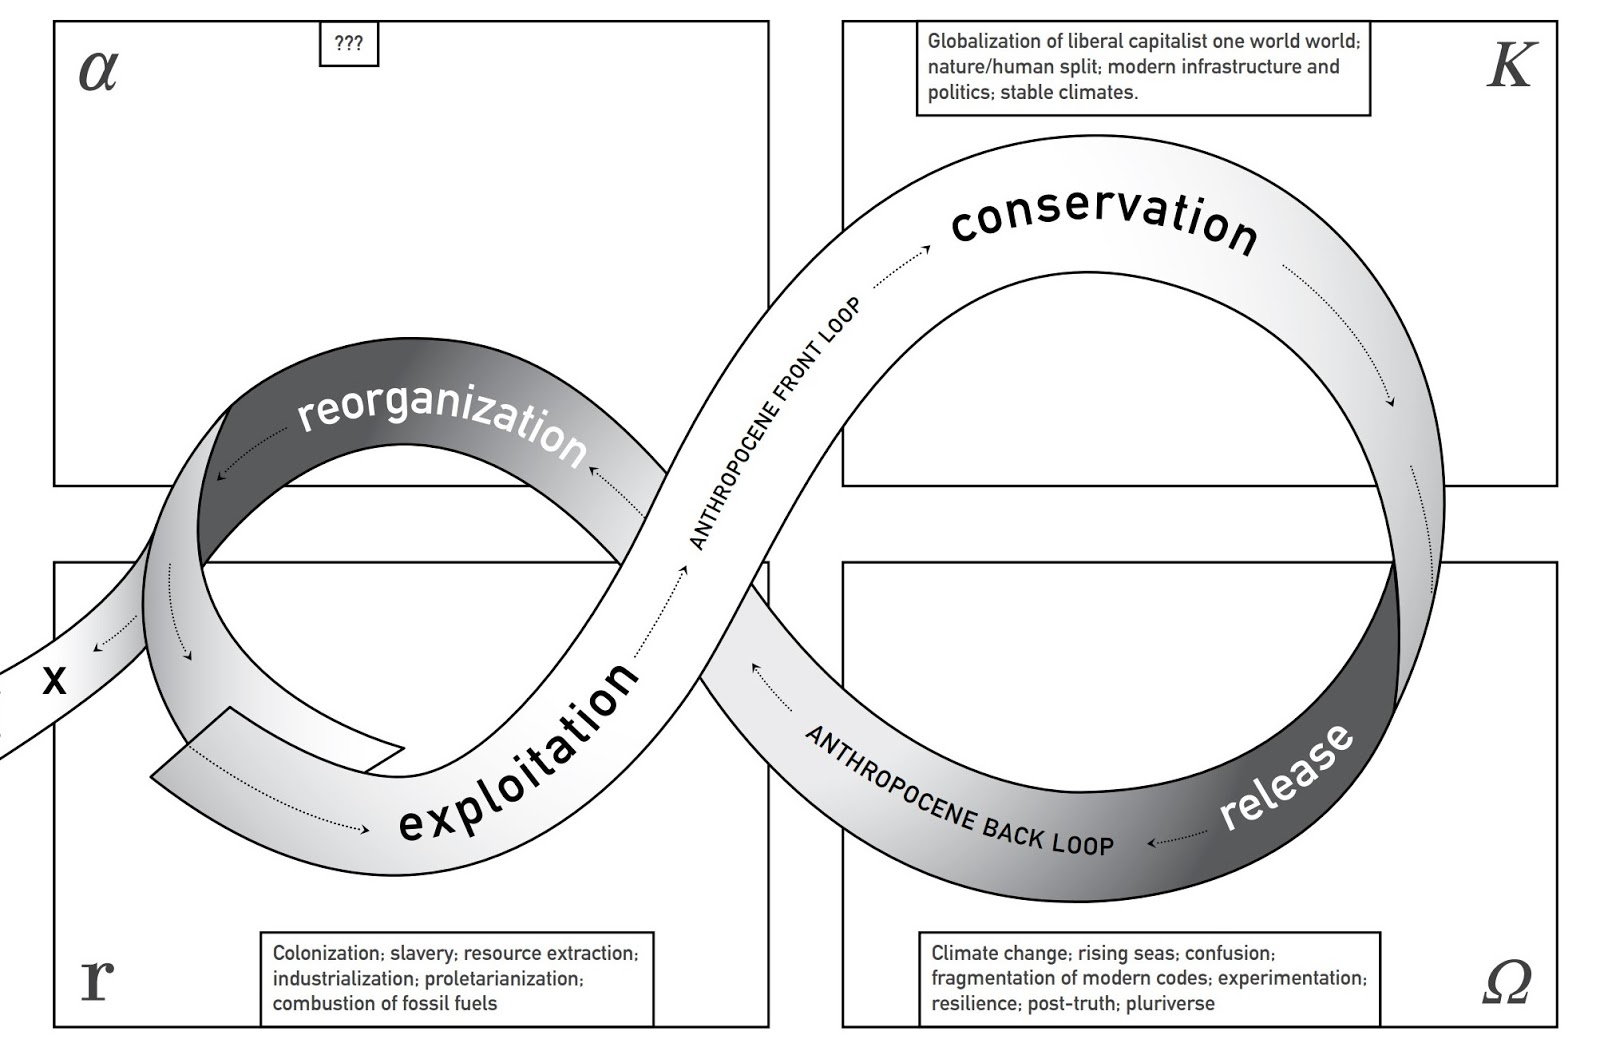 Adaptive cycle. from Lance H. Gunderson and C.S. Holling, Panarchy: Understanding transformations in systems of humans and nature (Washington, D.C.: Island Press, 2002), adapted by Caroline Castro for Anthropocene Back Loop: Experiments in Unsafe Operating Space by Stephanie Wakefield (London: Open Humanities Press, 2020).